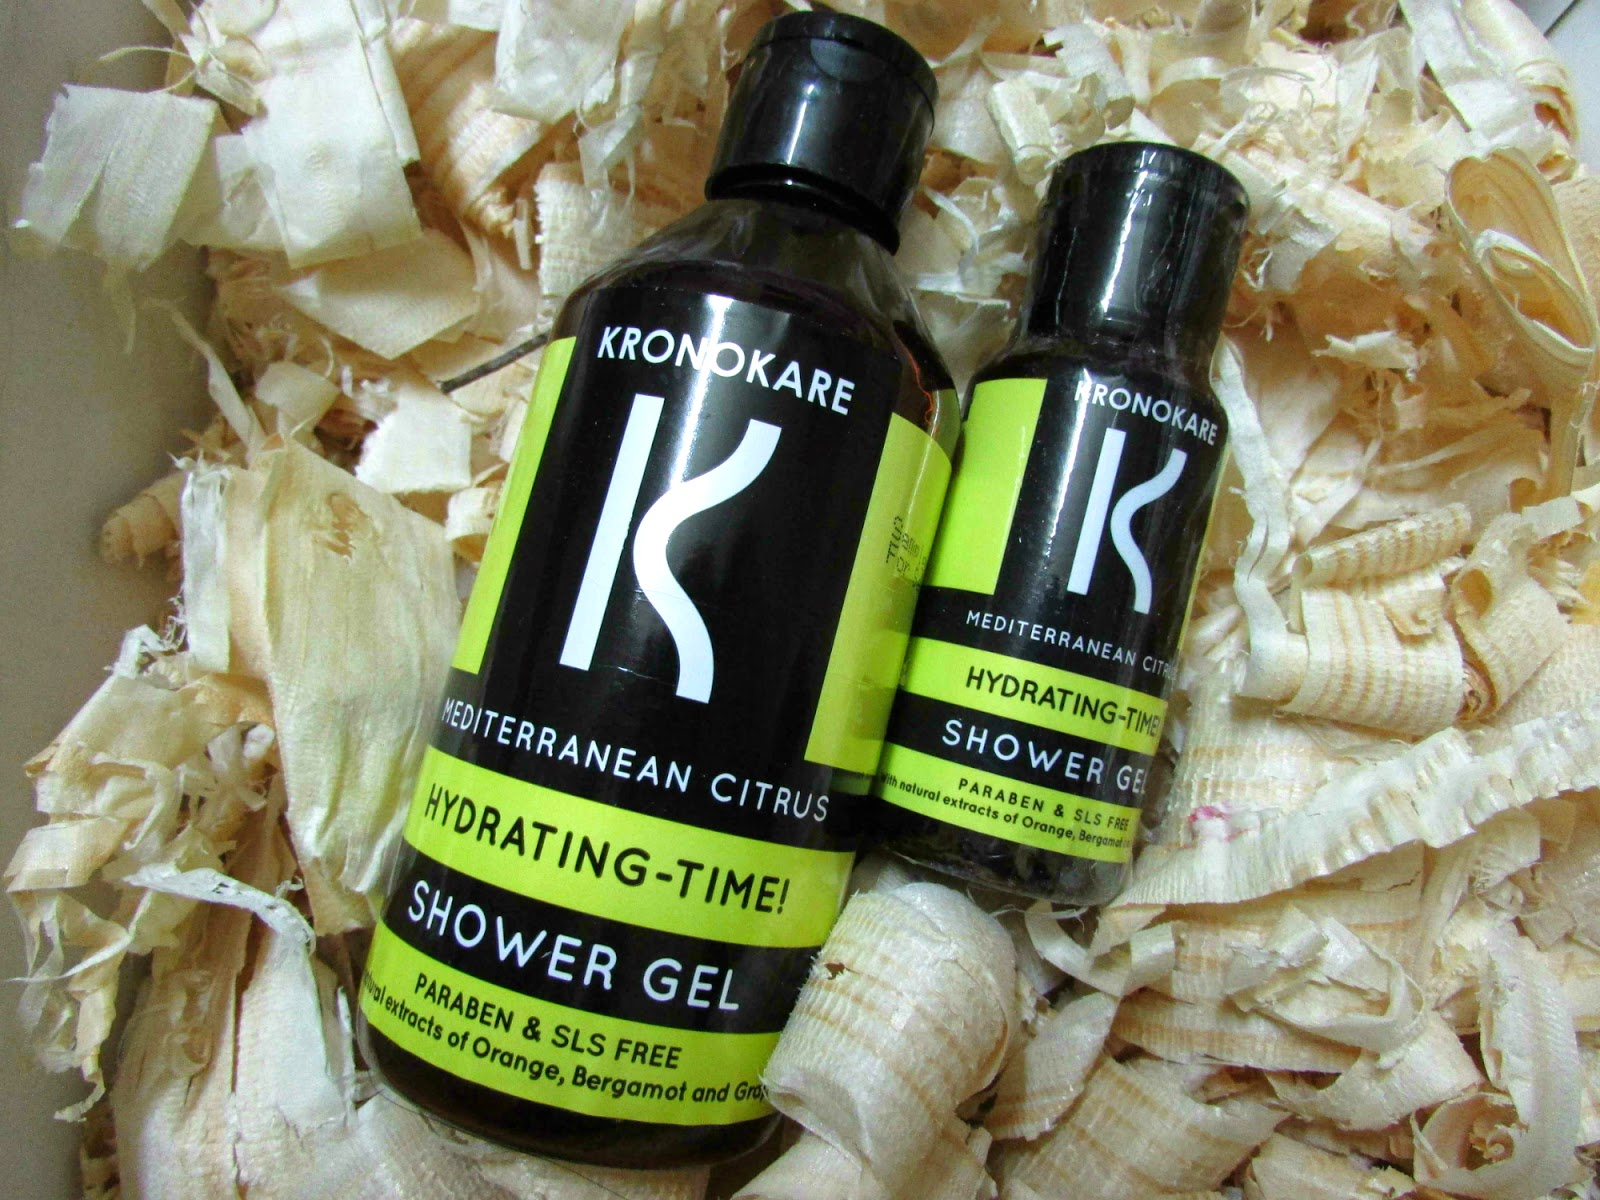 KRONOKARE Hydrating Time shower Gel,,Body wash, body wash review, body wash review india, body wash price, body wash price india, body wash price and review, body wash price and review india, shower gel , shower gel review, shower gel review india, shower gel price, shower gel price india, shower gel price and review, shower gel price and review india, how to use shower gel, how to use body wash, how to use shower gel without loofa , how to use shower gel with hands, how to use body wash without loofa, how to use body wash with hands, how to use body wash with loofa, how to use shower gel with loofa, best shower gel, worst shower gel, best body wash, worst body wash,how to take bath with body wash, how to take bath with shower gel, how to take bath without soap, how to take bath, how to take shower, how to clean body, economical shower gel, economical body wash, KRONOKARE shower gel, KRONOKARE body wash , palmolive shower gel review, palmolive shower gel review india, palmolive shower gel price, palmolive shower gel price india, palmolive body wash ,palmolive body wash review, KRONOKARE body wash review india, KRONOKARE body wash price, KRONOKARE body wash price india, KRONOKARE body wash review and price india, KRONOKARE shower gel review and price, KRONOKARE body wash review and price india, KRONOKARE shower gel review and price india, KRONOKARE aroma absolute relax shower gel, KRONOKARE Mediterranean Citrus body wash, KRONOKARE Mediterranean Citrus shower gel review, KRONOKARE Mediterranean Citrus shower gel review india, KRONOKARE Mediterranean Citrus shower gel price, KRONOKARE Mediterranean Citrus shower gel price india, KRONOKARE Mediterranean Citrus shower gel price and review, KRONOKARE Mediterranean Citrus shower gel price and review india, KRONOKARE Mediterranean Citrus body wash review, KRONOKARE Mediterranean Citrus body was, KRONOKARE Mediterranean Citrus body wash review india, KRONOKARE Mediterranean Citrus price, KRONOKARE Mediterranean Citrus body 